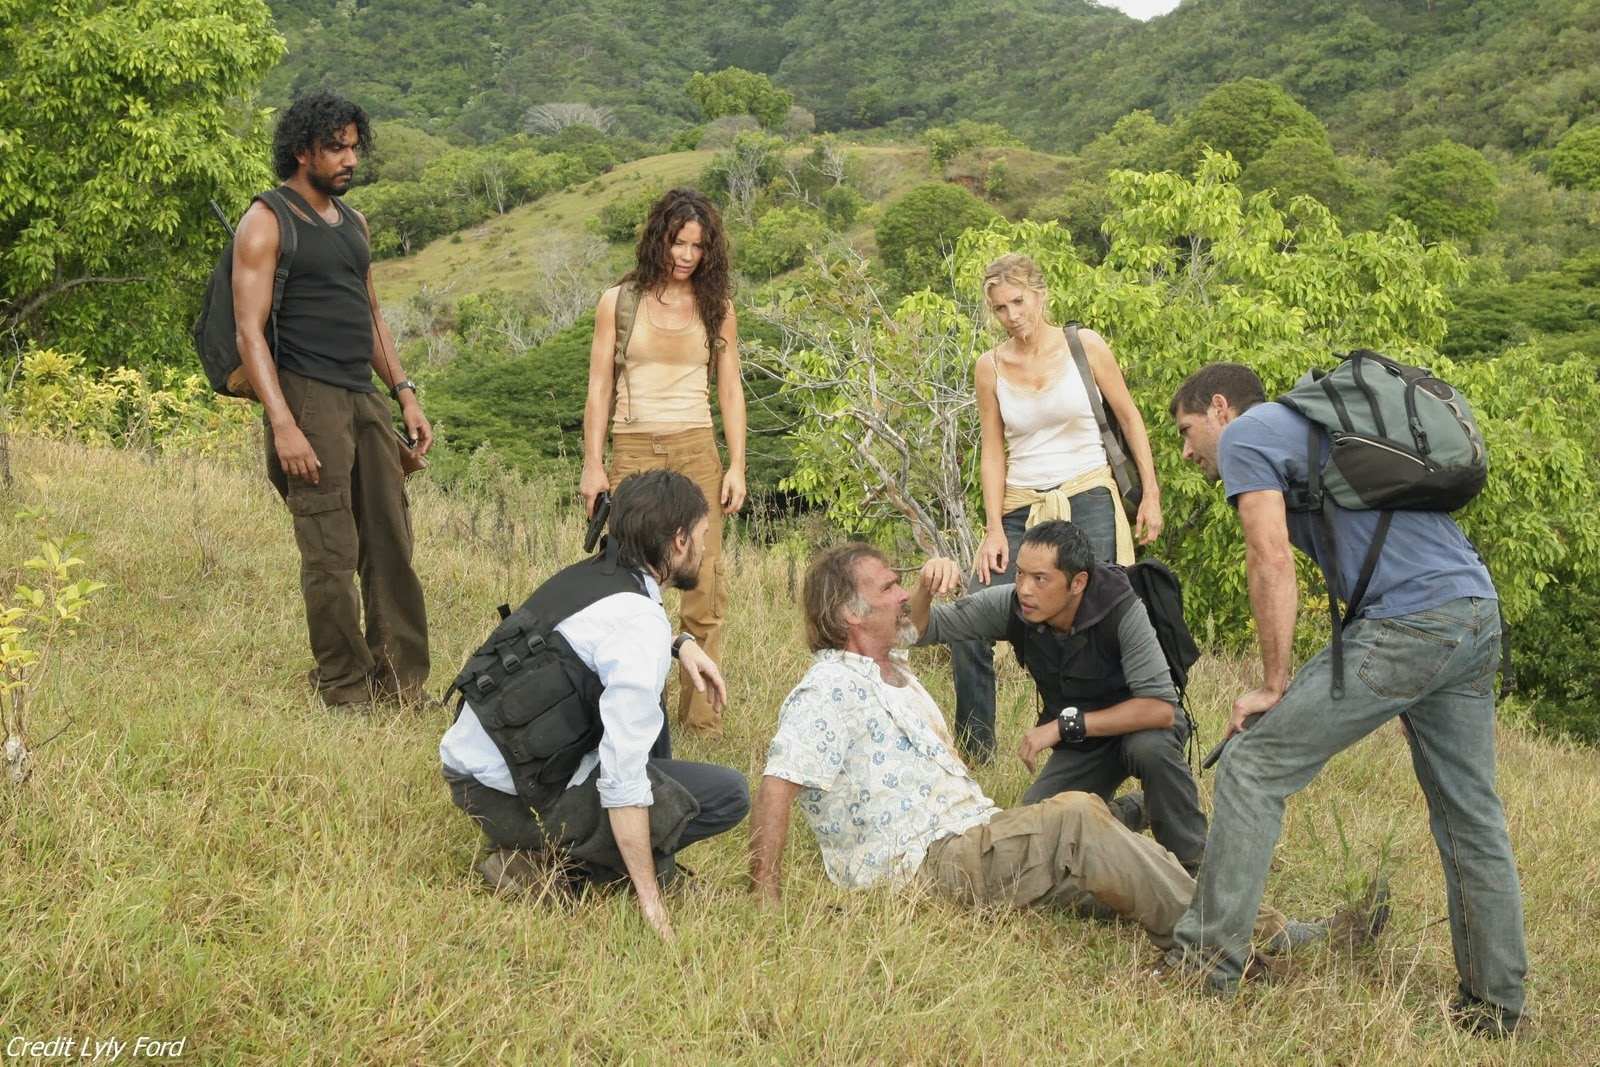 Lost season 1 episode 11 review : Cholo mexican gangster movies